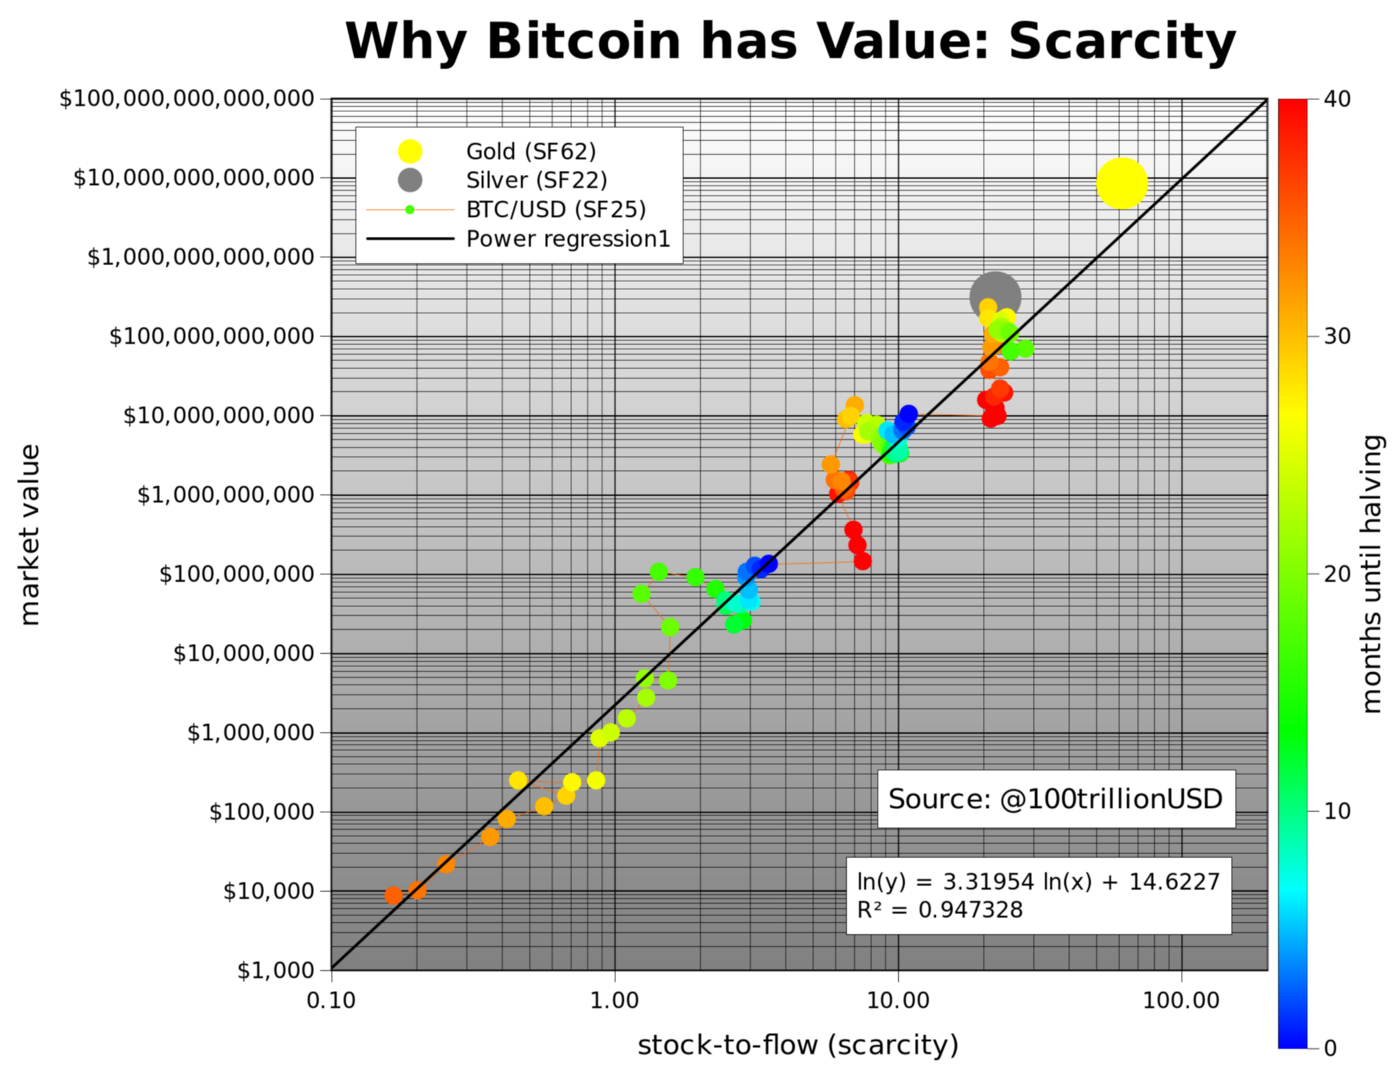 Source: Modeling Bitcoin's Value With Scarcity